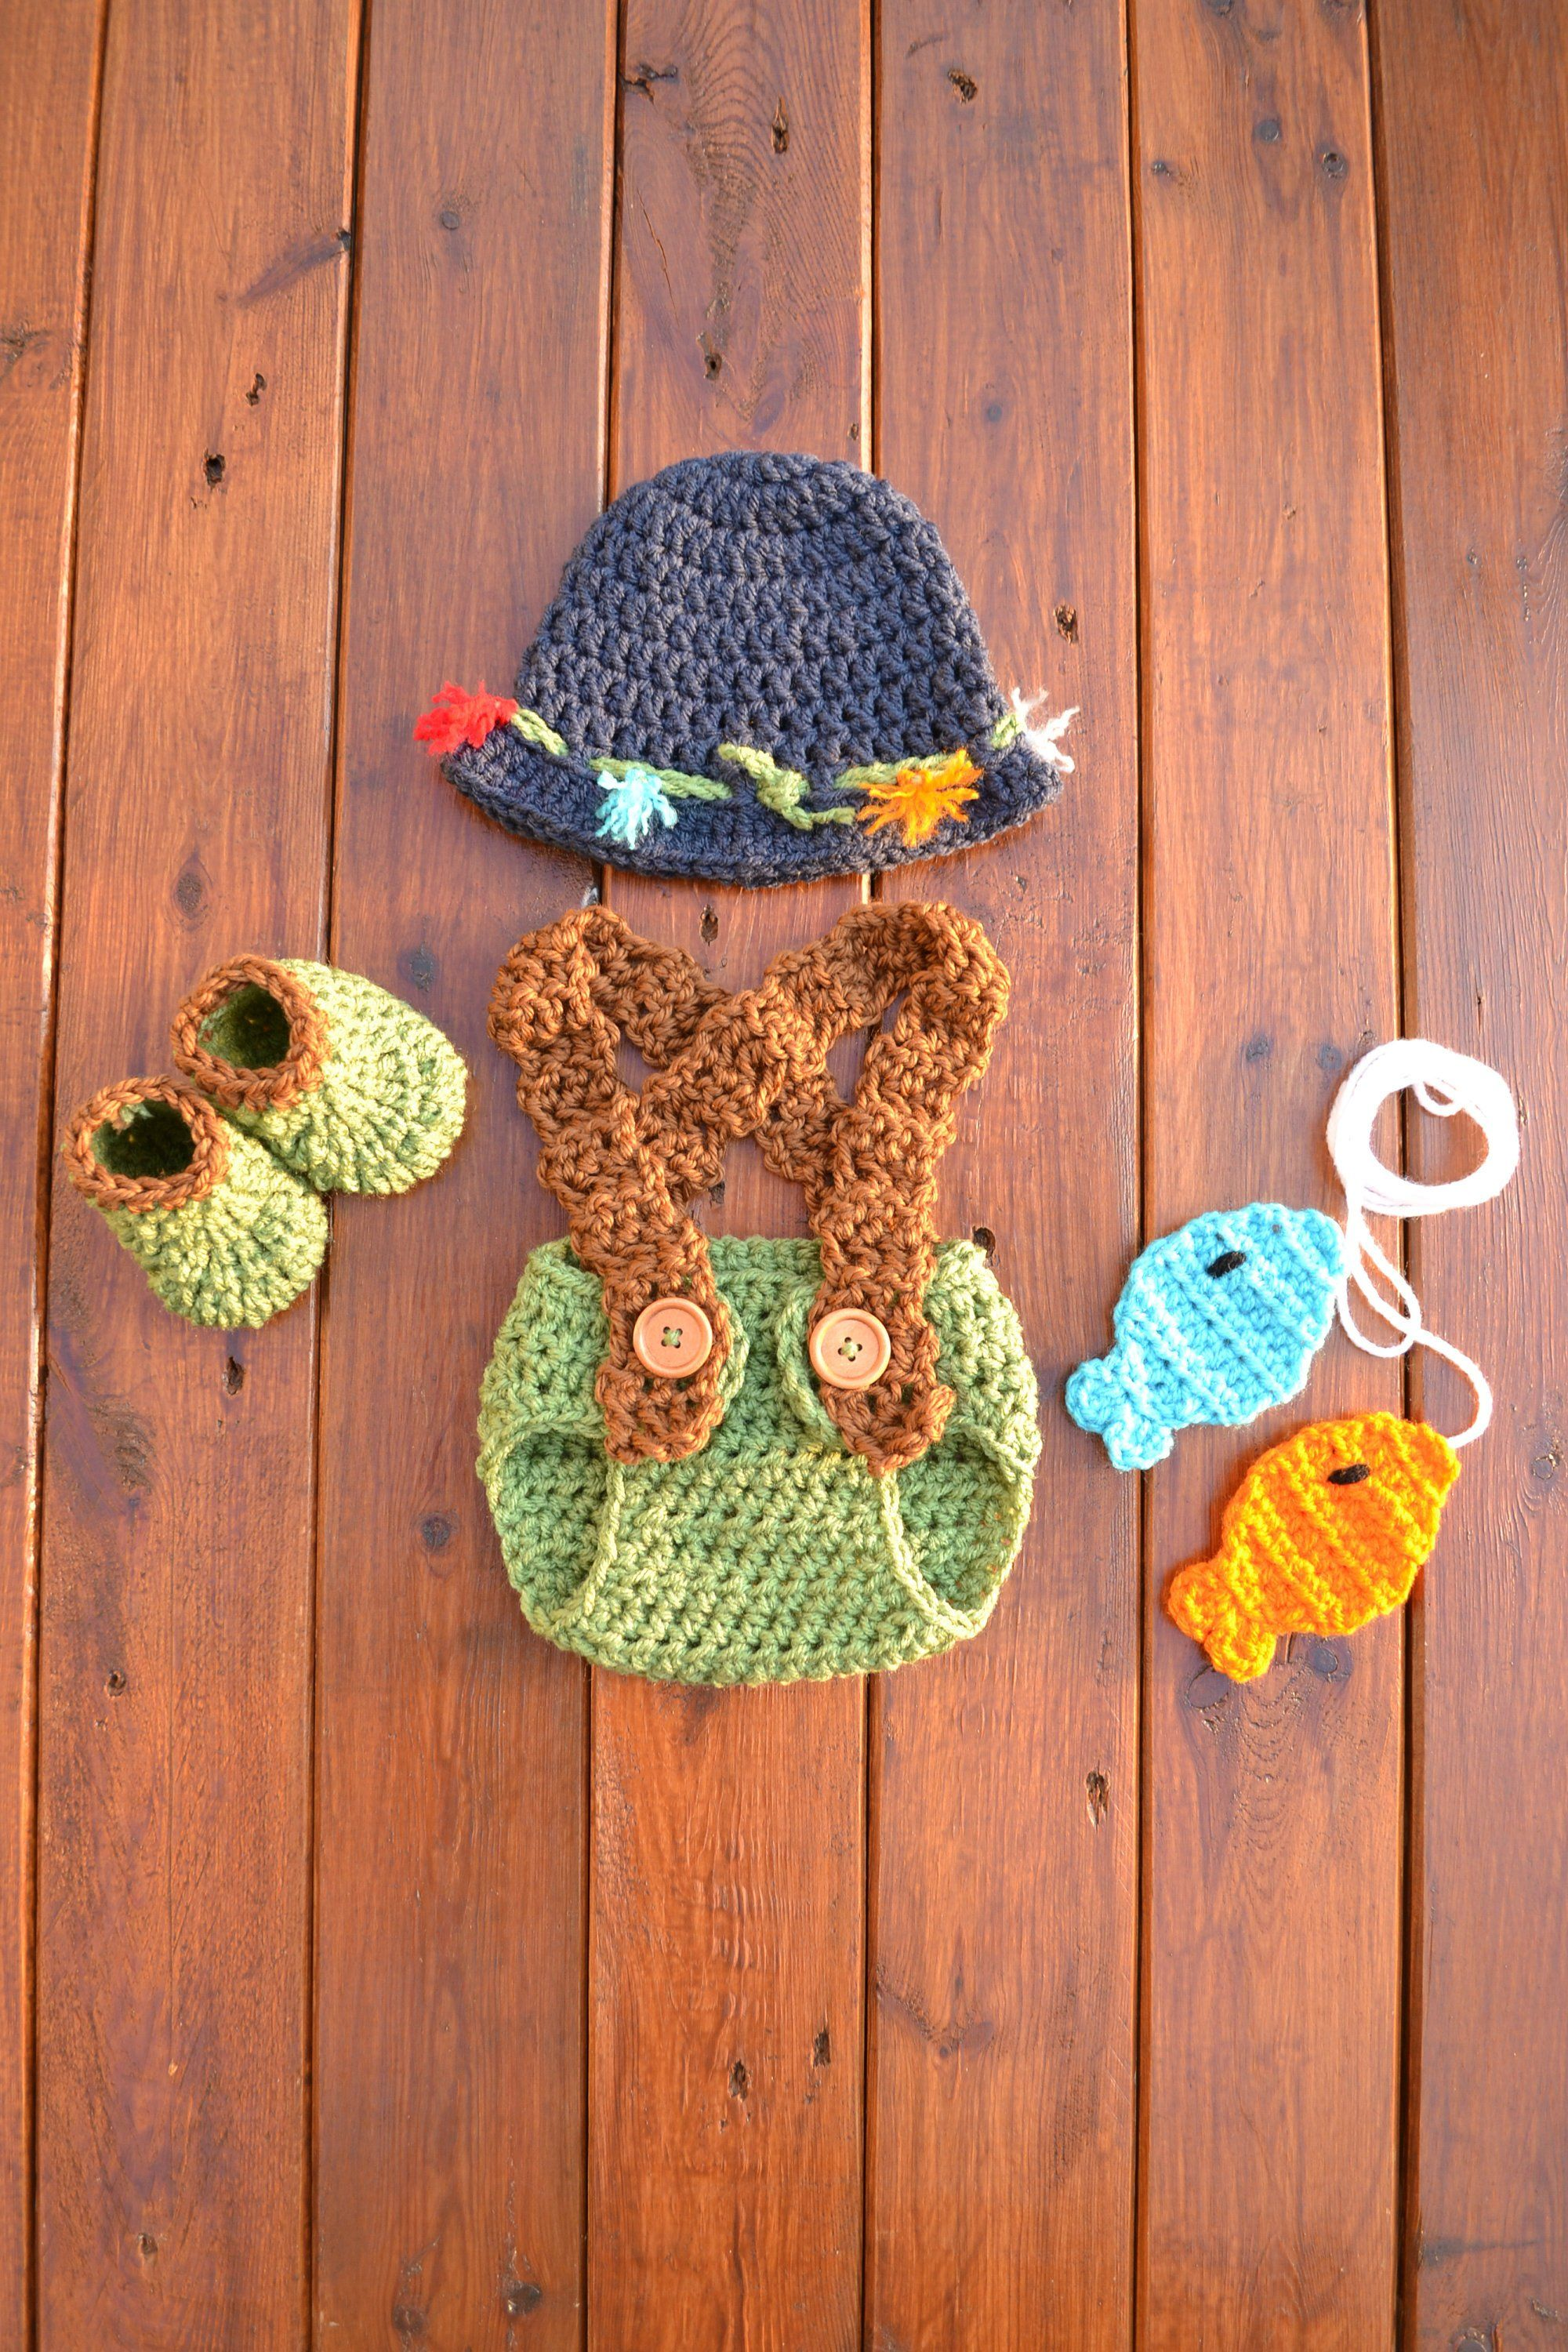 be4ed2235 Crochet Newborn Baby Fishing Fisherman Outfit Set Newborn Boy Photo Outfit  Baby Fishing Hat Baby Photography